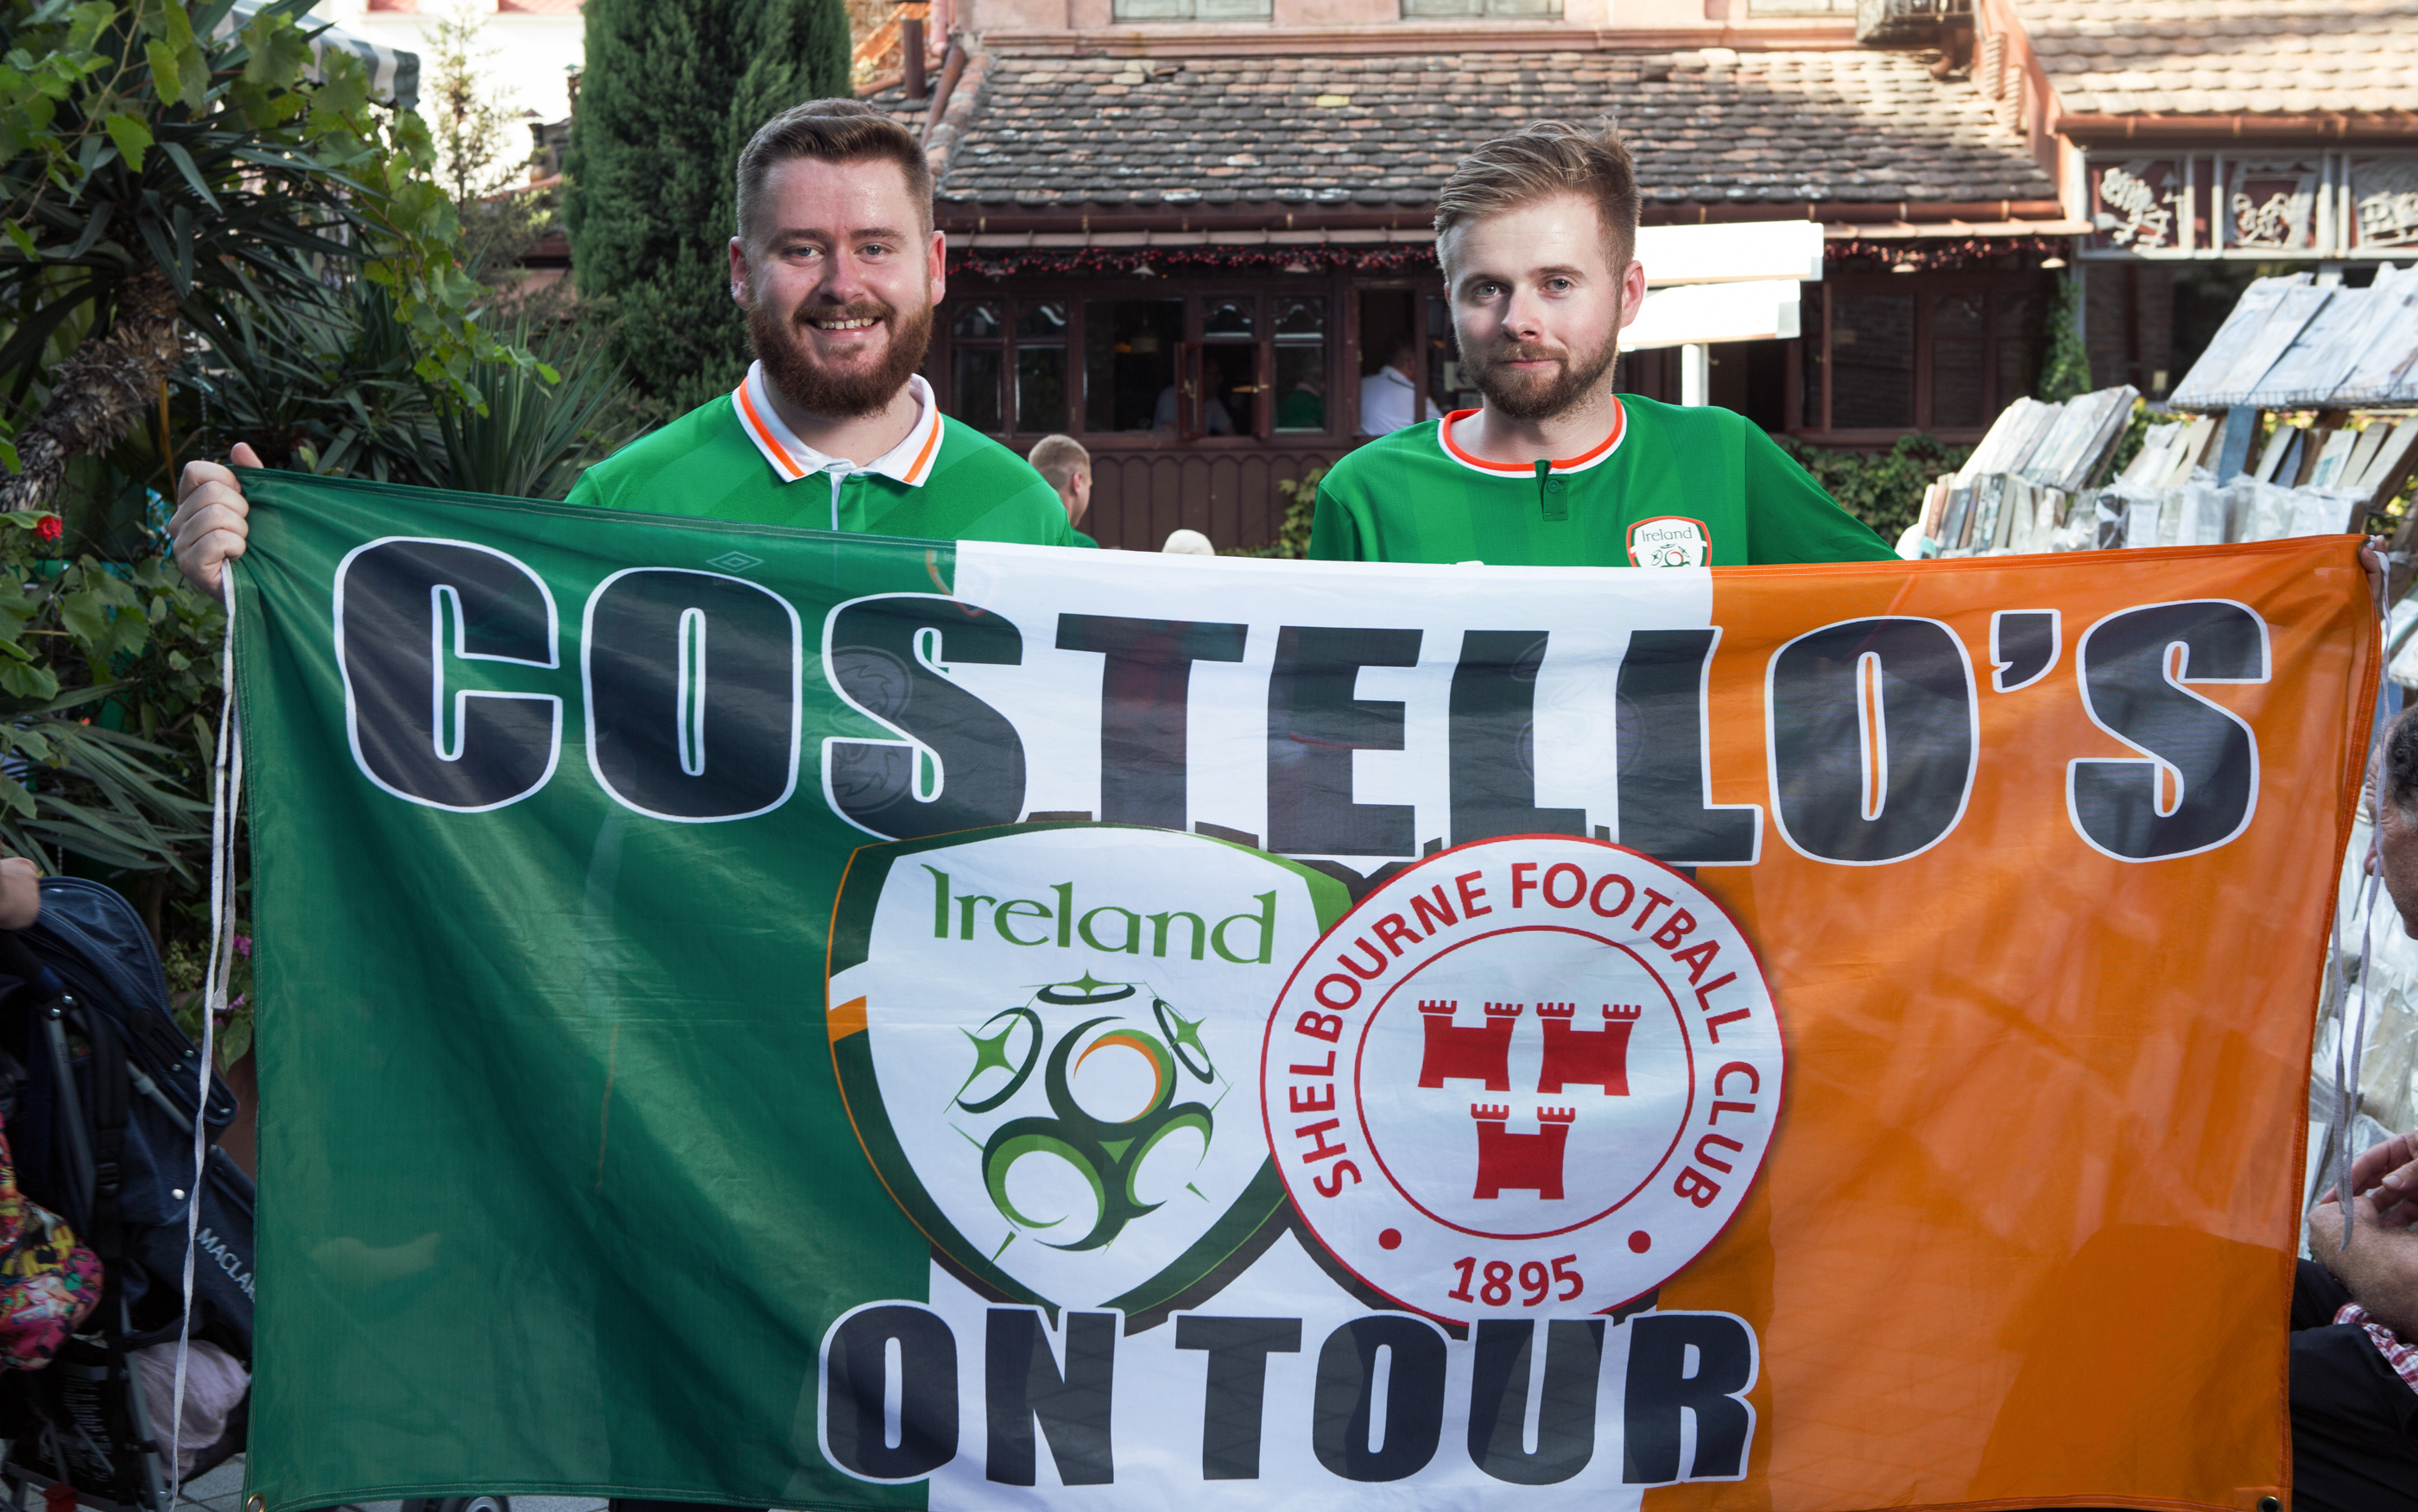 Kevin Moher & Aaron Costello